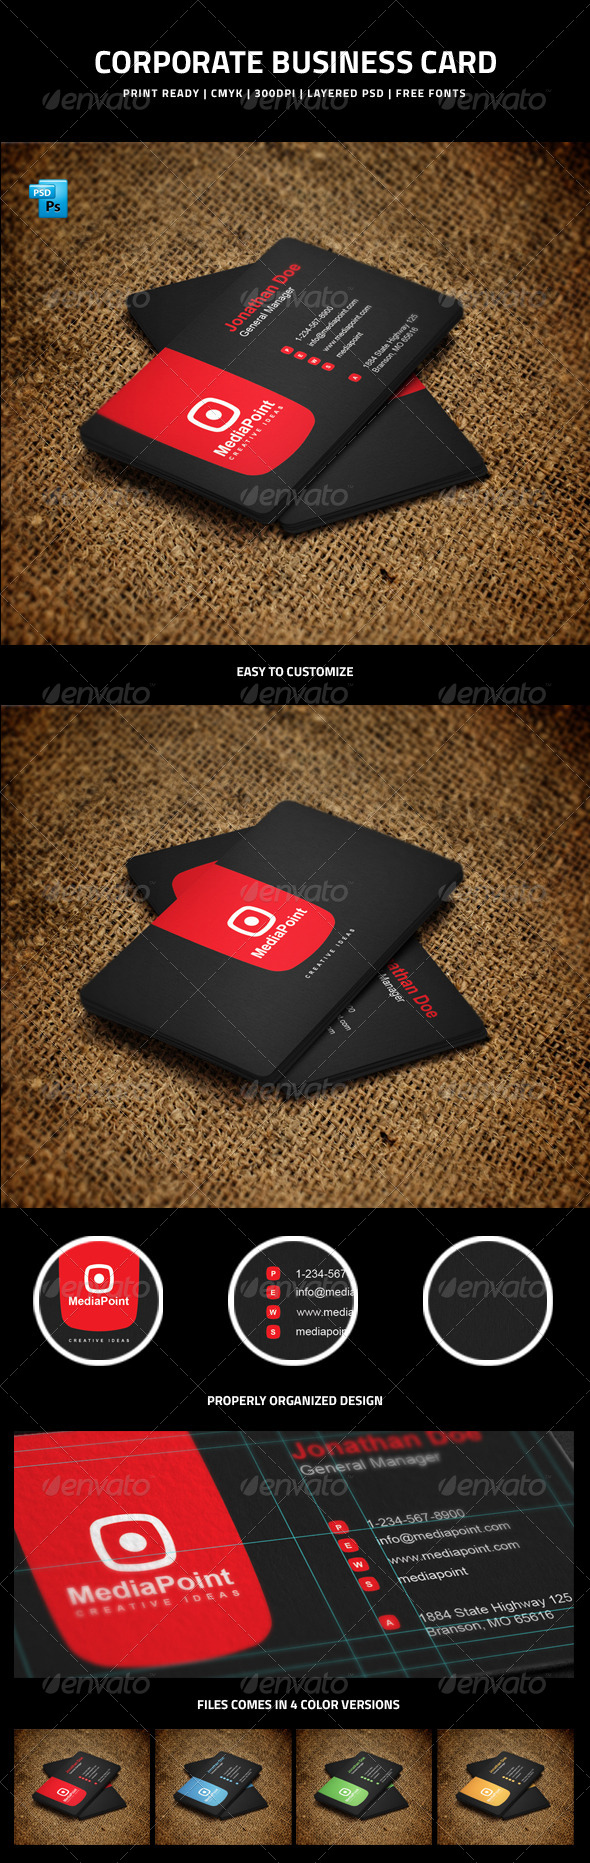 GraphicRiver Corporate Business Card 6008885